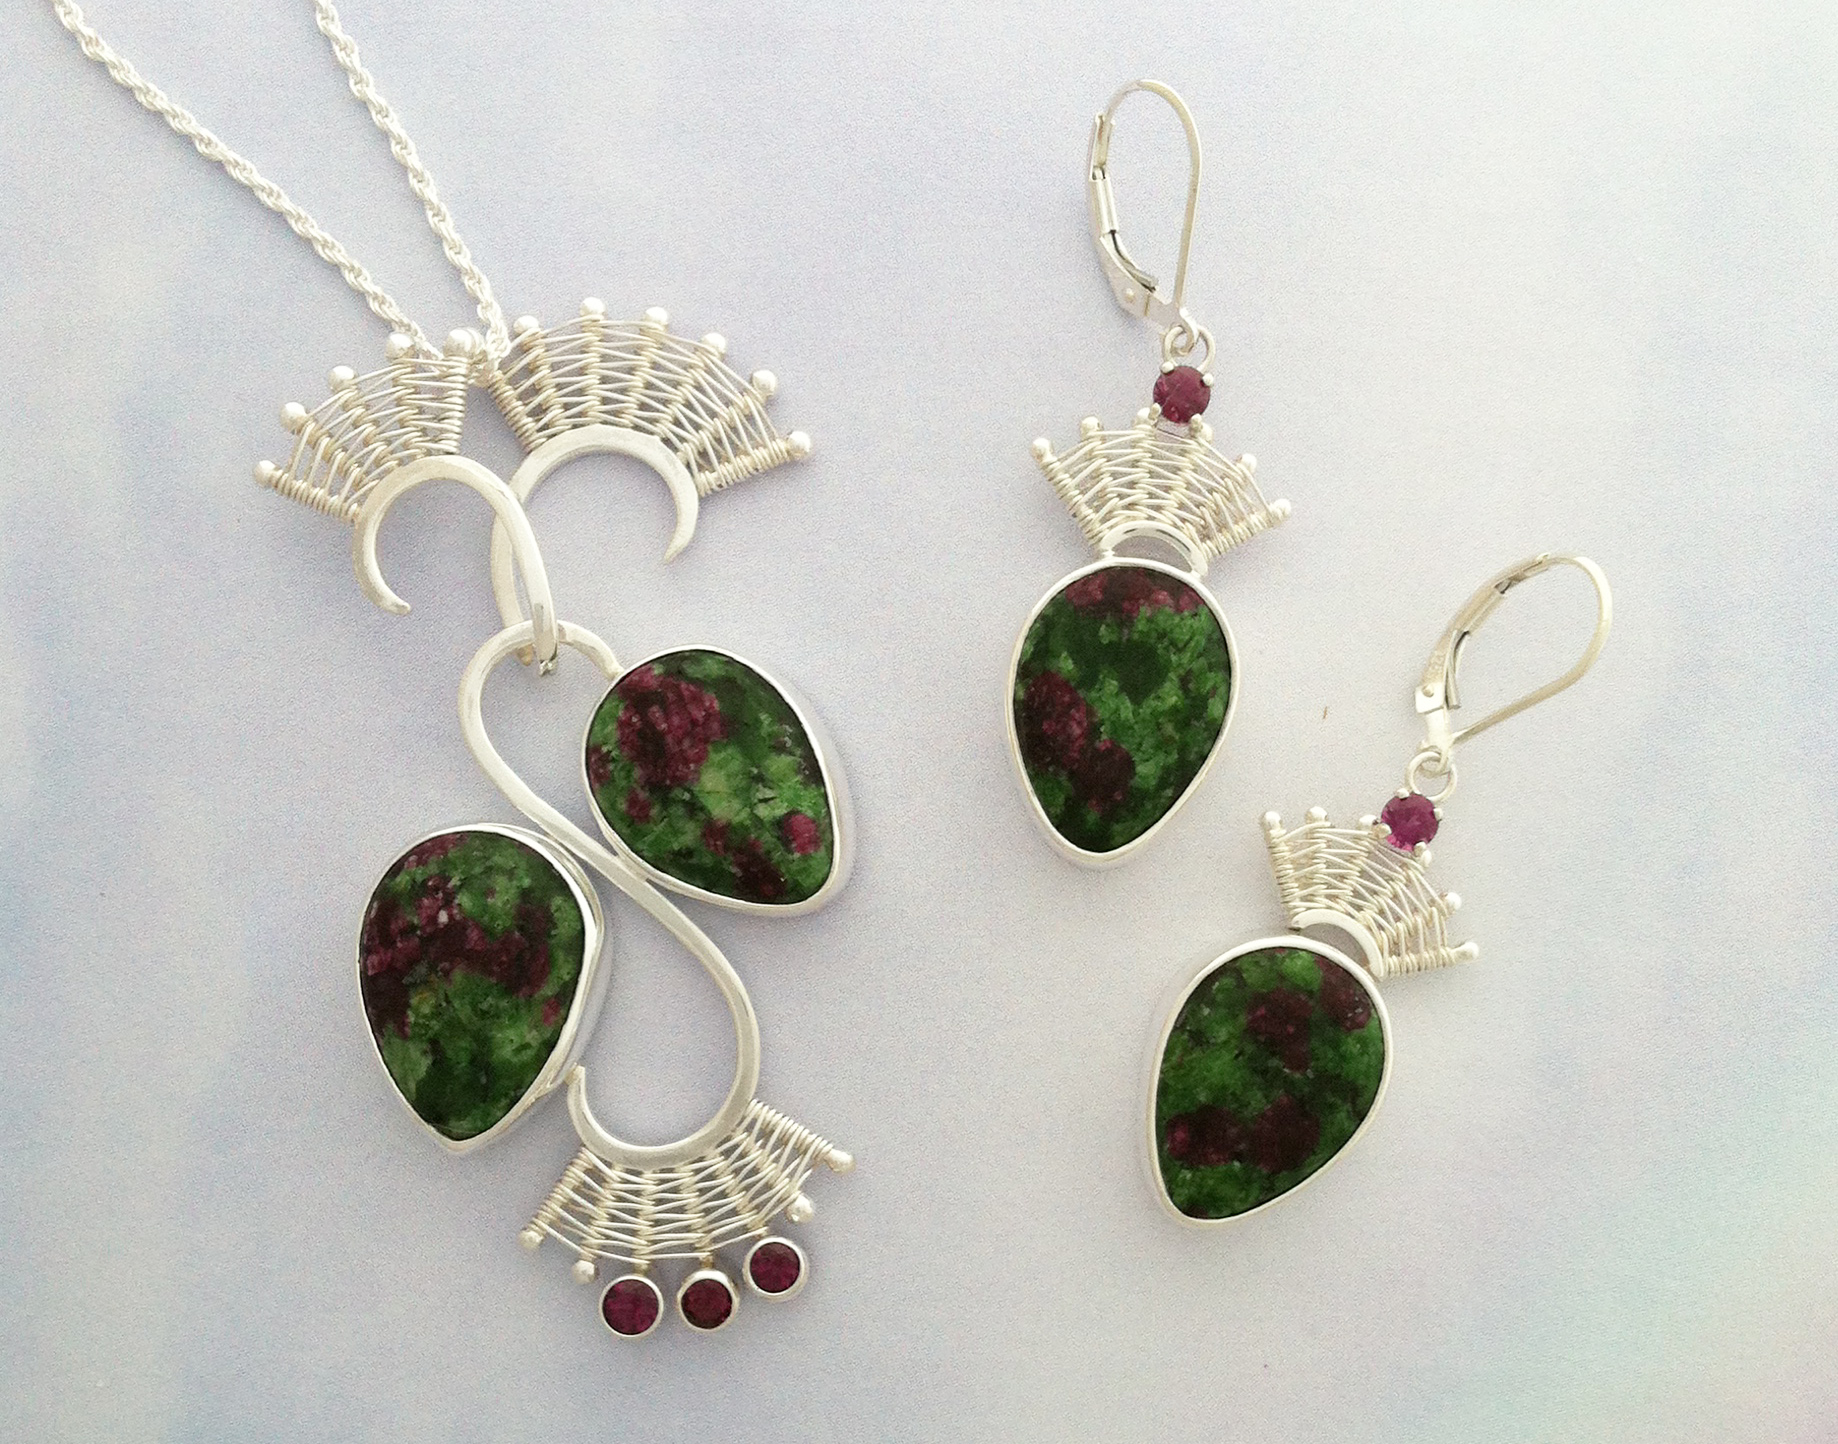 Ruby in Zoisite Pendant and Earrings